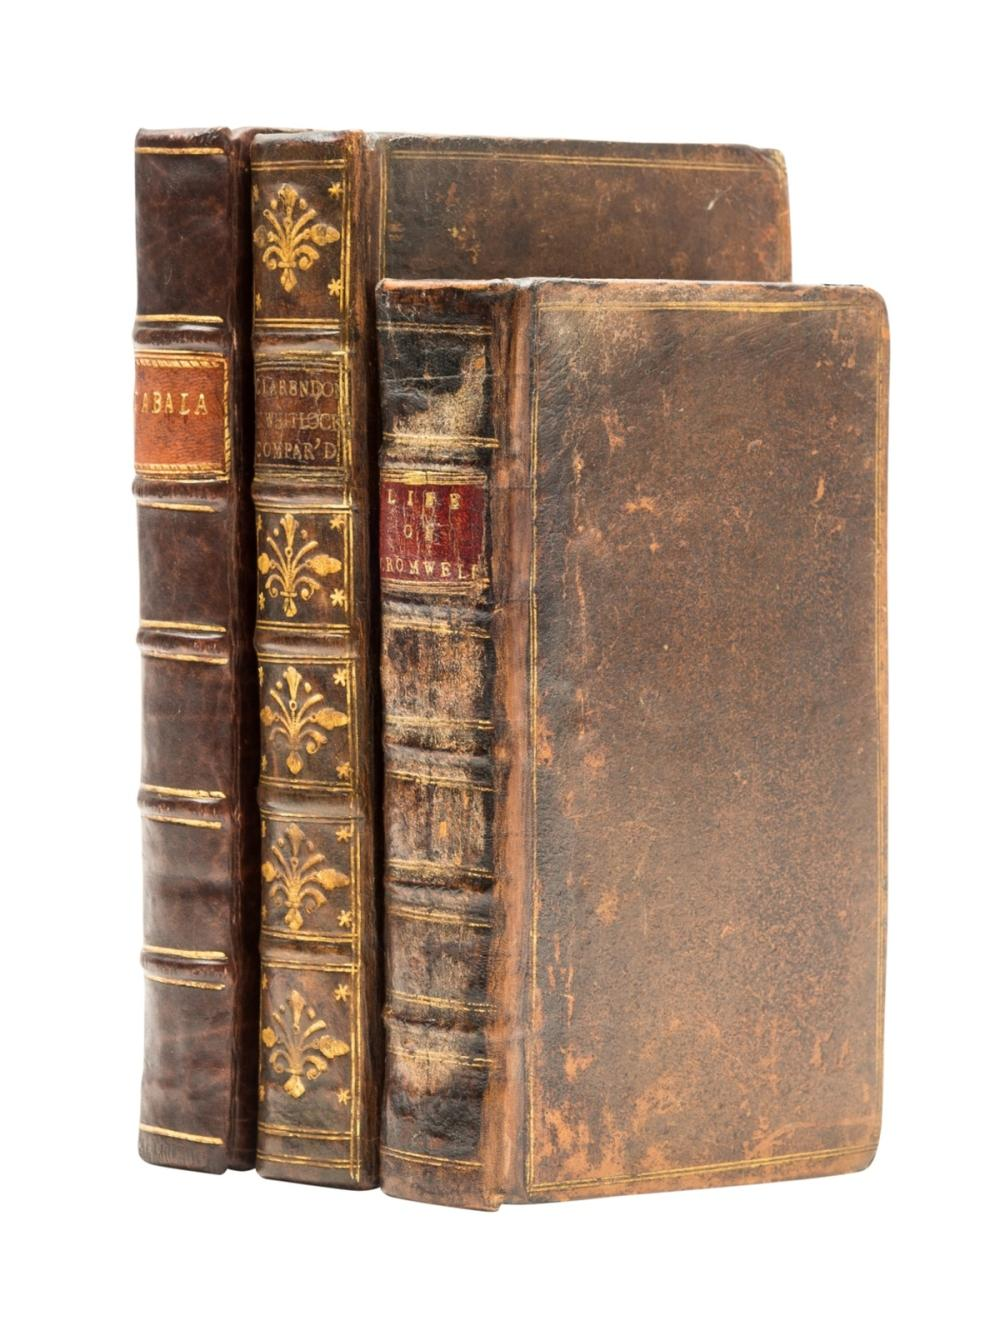 English Civil War.- Cabala, Mysteries of State, in Letters of the great Ministers of K. James and K. Charles ..., for M.M.G. Bedell and T. Collins, 1654; and 2 others similar (3)